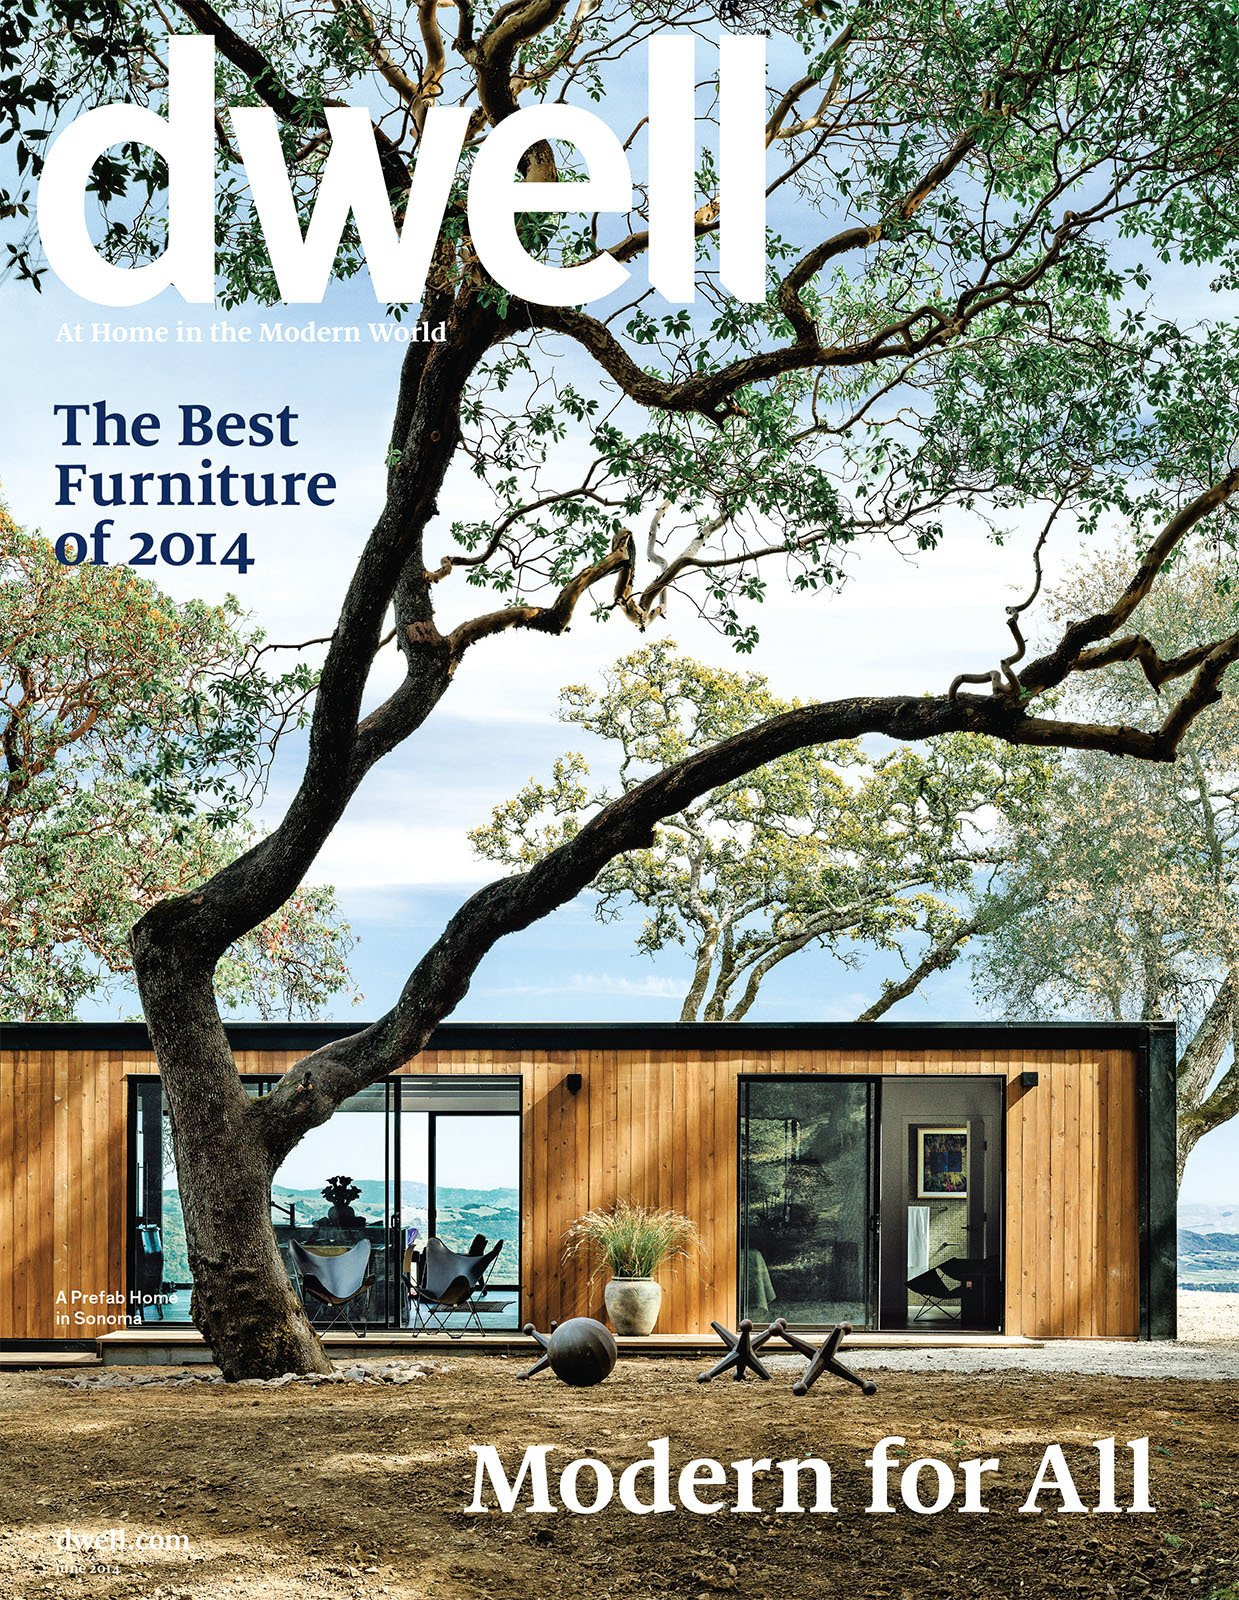 Modern for All by Dwell